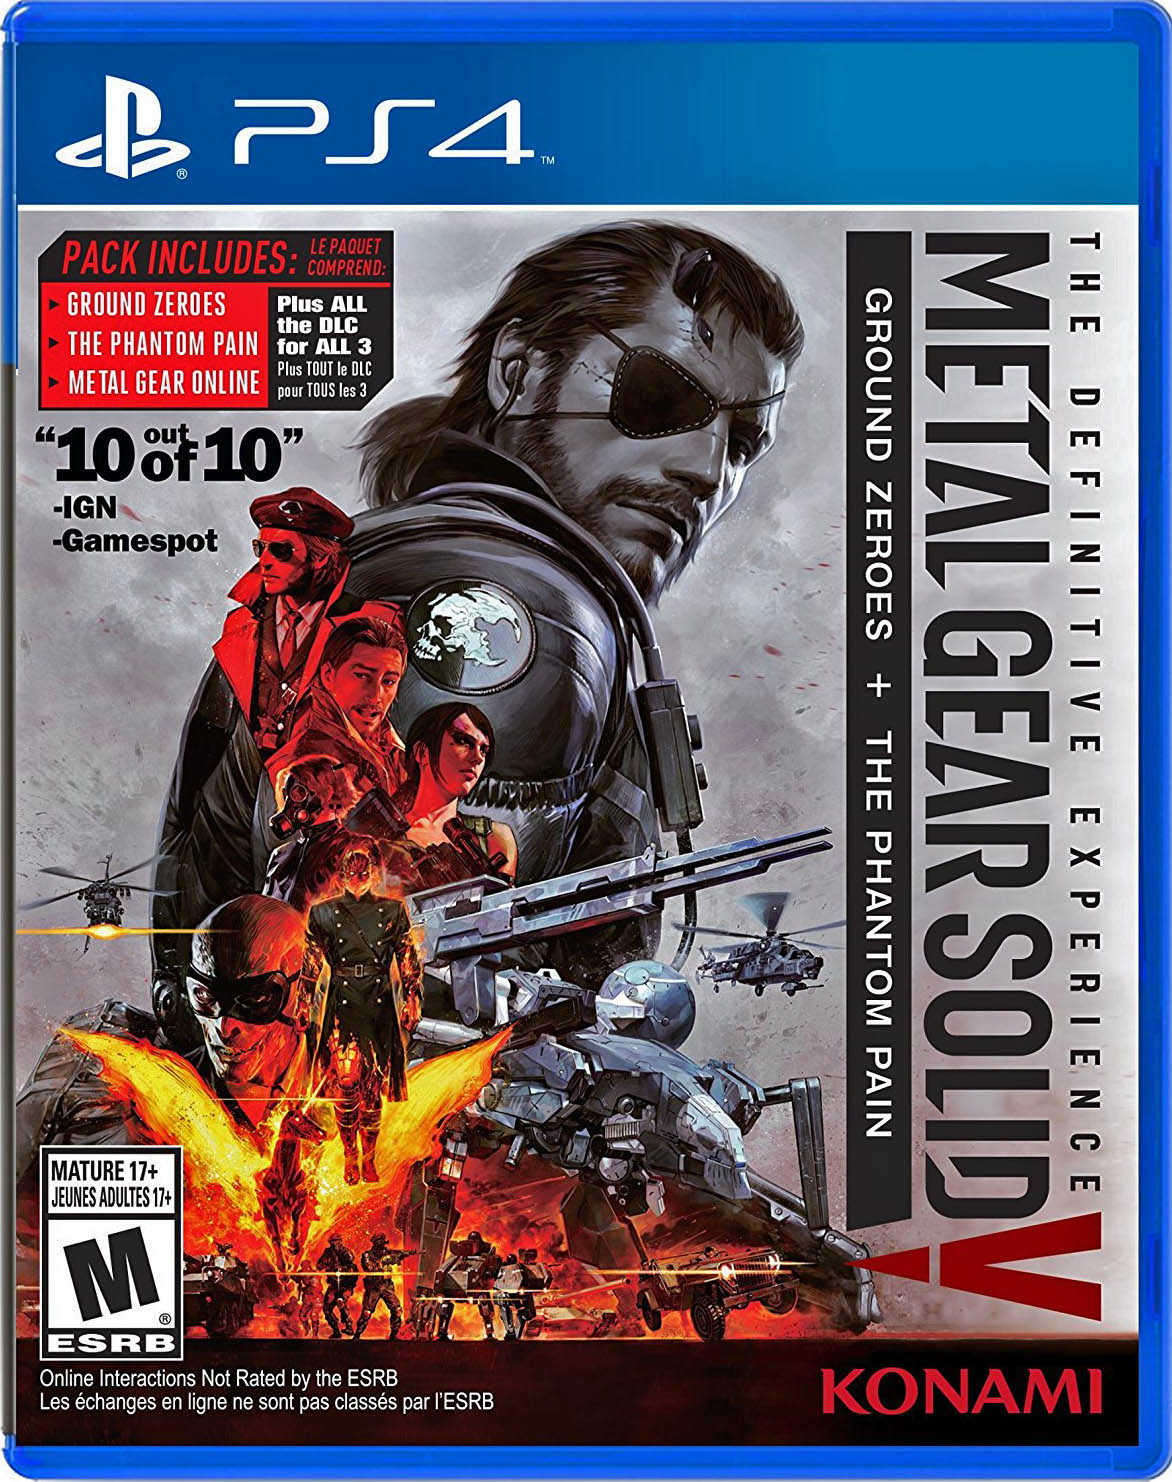 Metal Gear Solid V: The Definitive Experience Издание в США